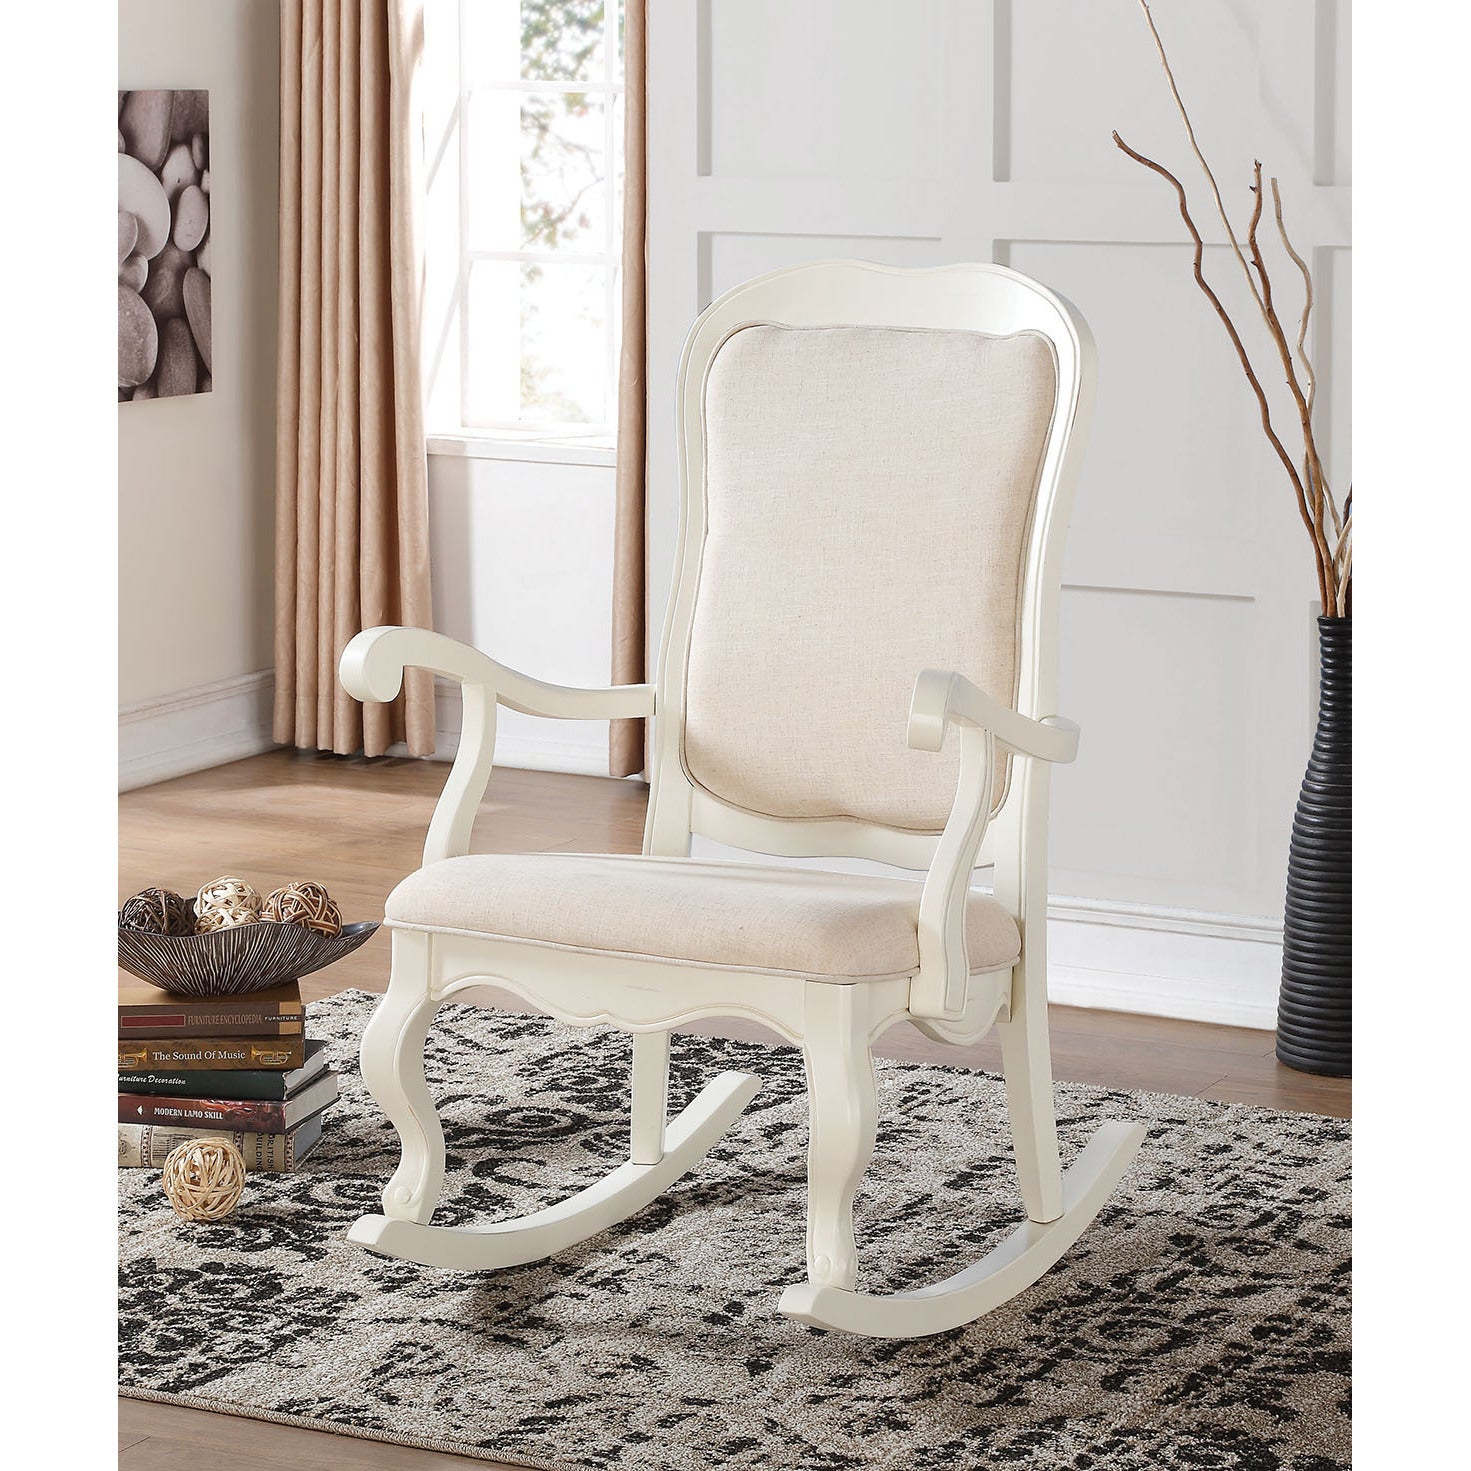 Sharan Antique White Wooden Rocking Chair Pertaining To Ethel Country White Rocking Chairs (#15 of 20)